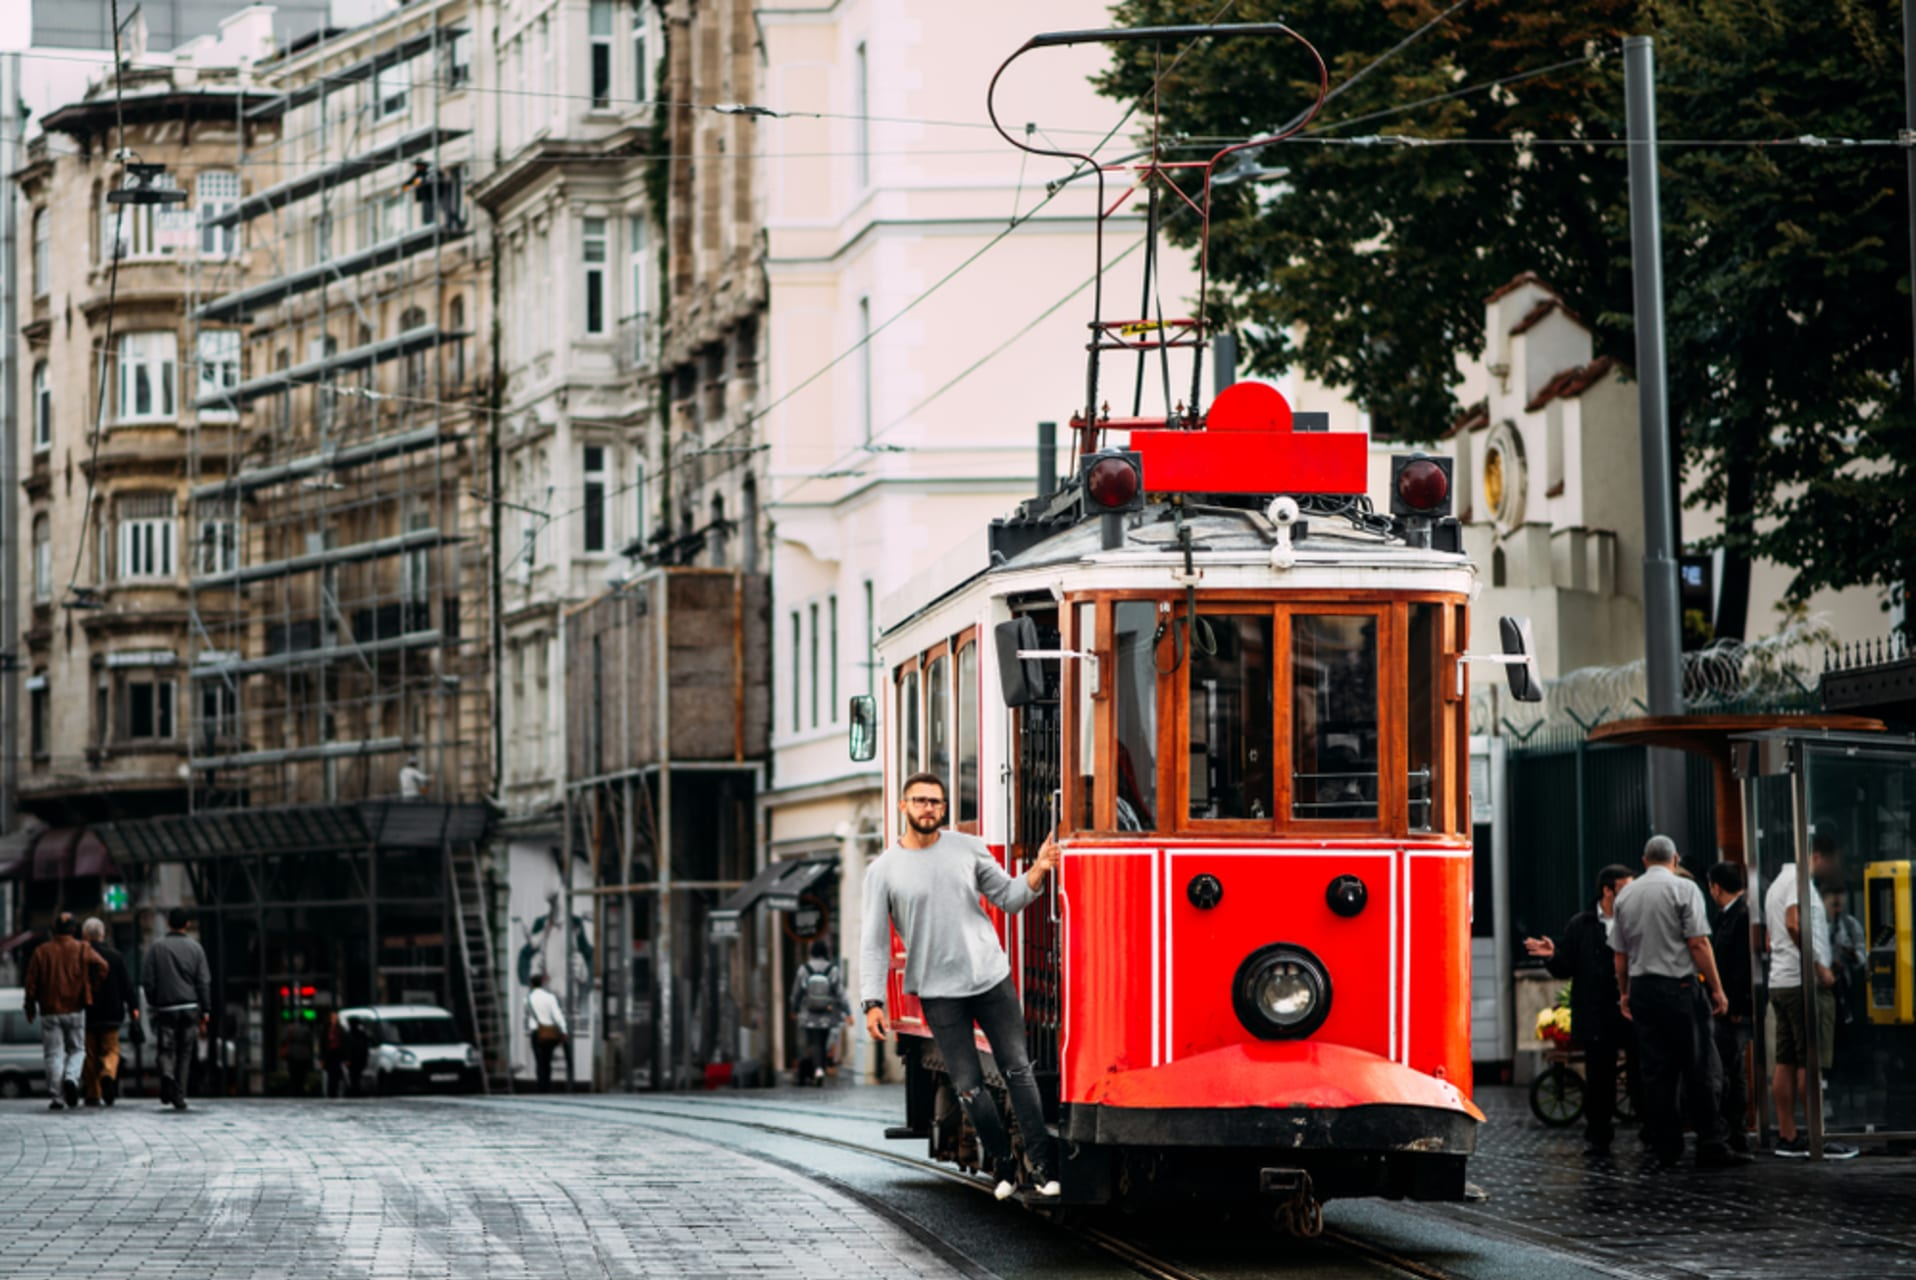 Istanbul - The modern face of Istanbul